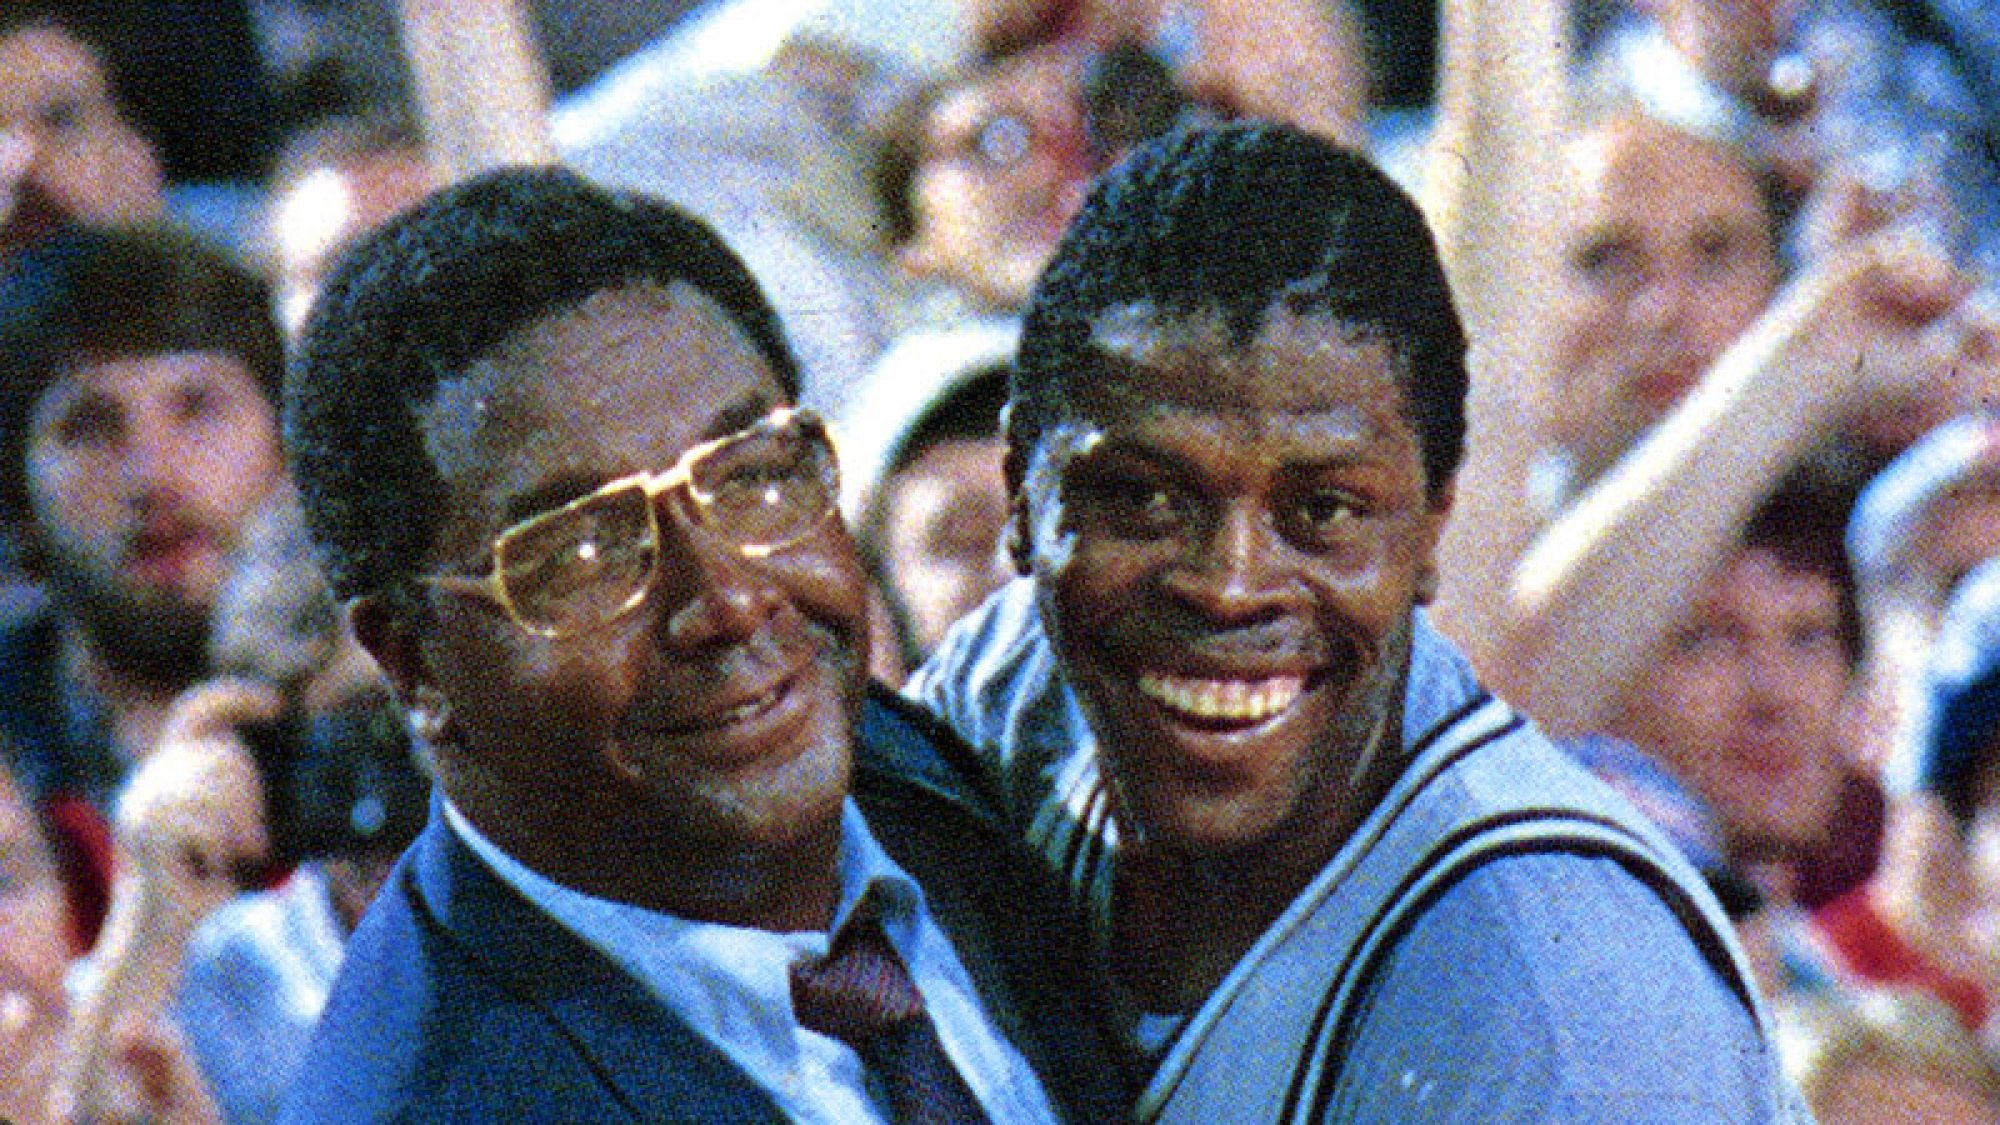 John Thompson Jr. and Patrick Ewing embrace in celebration on the court after a game.